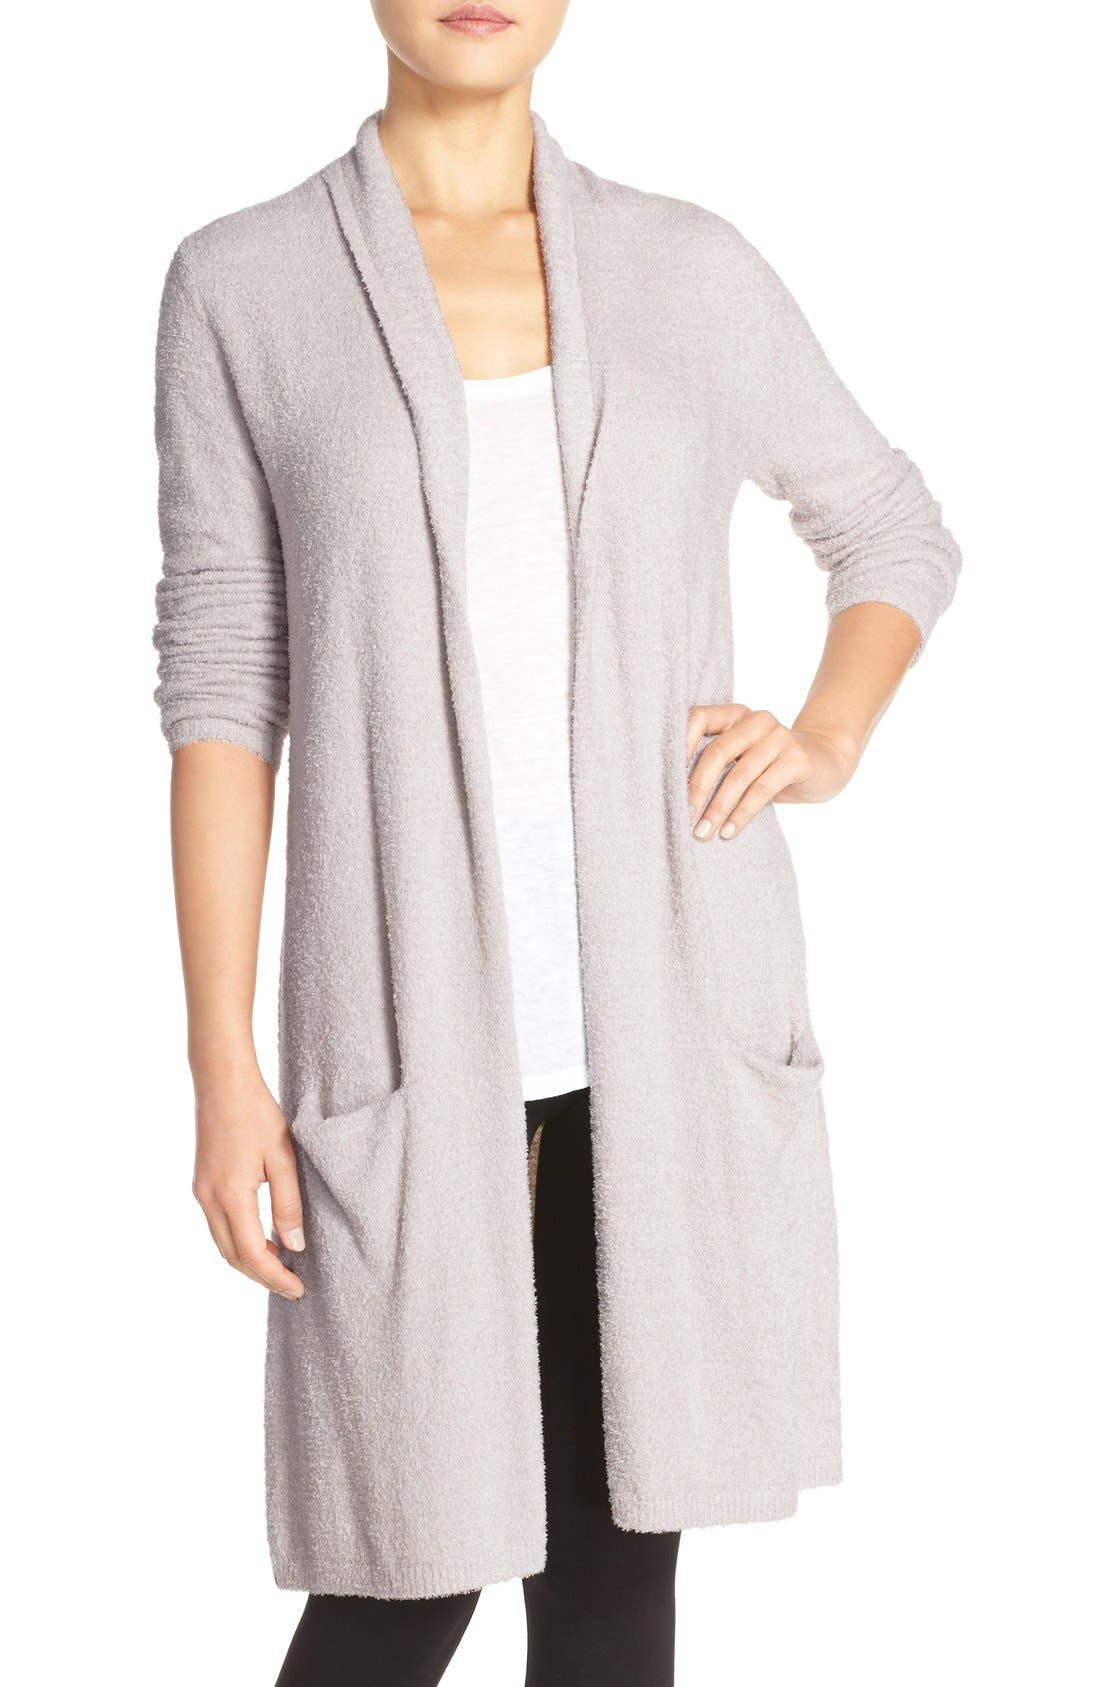 BAREFOOT DREAMS® CozyChic Lite® Long Essential Cardigan